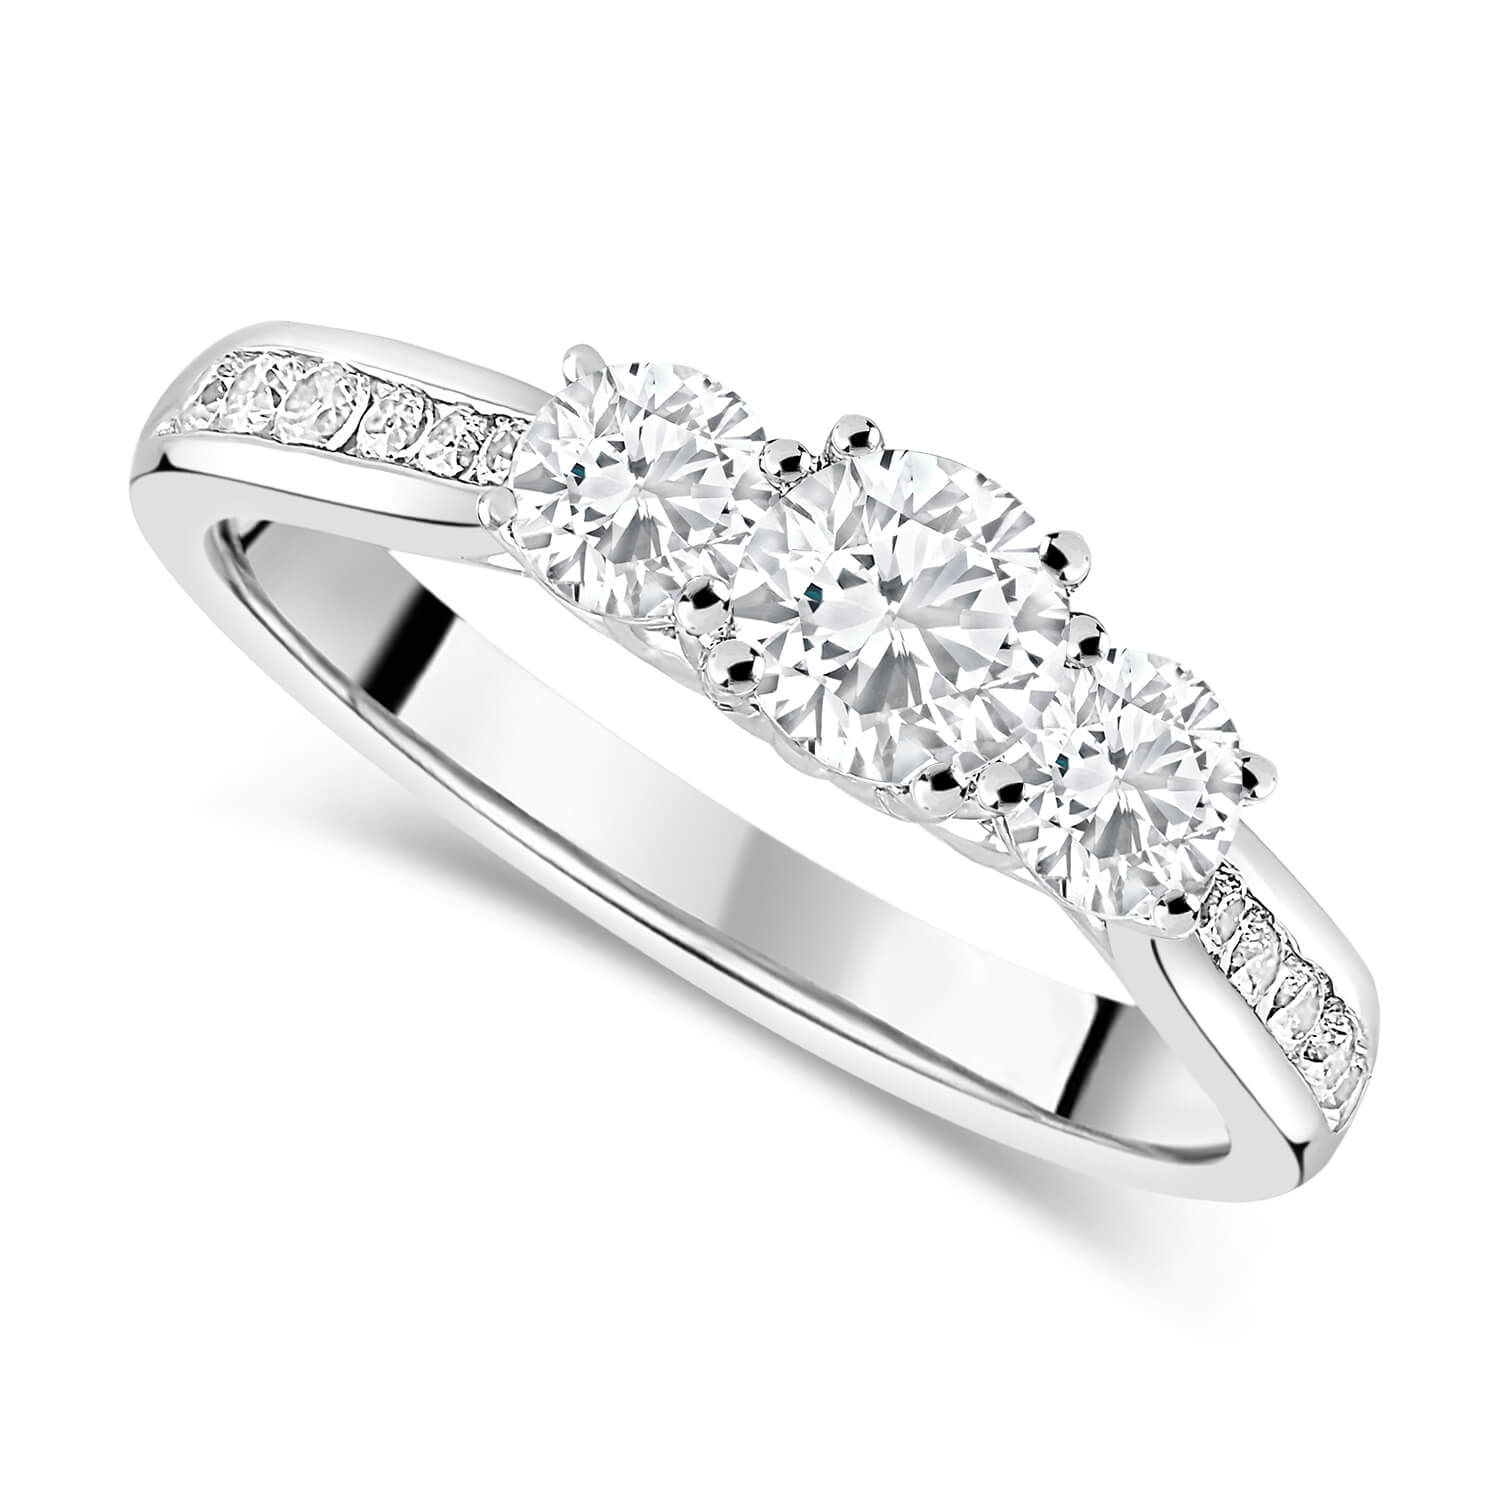 18ct White Gold 1.00ct Diamond Trilogy Fields Setting Ring